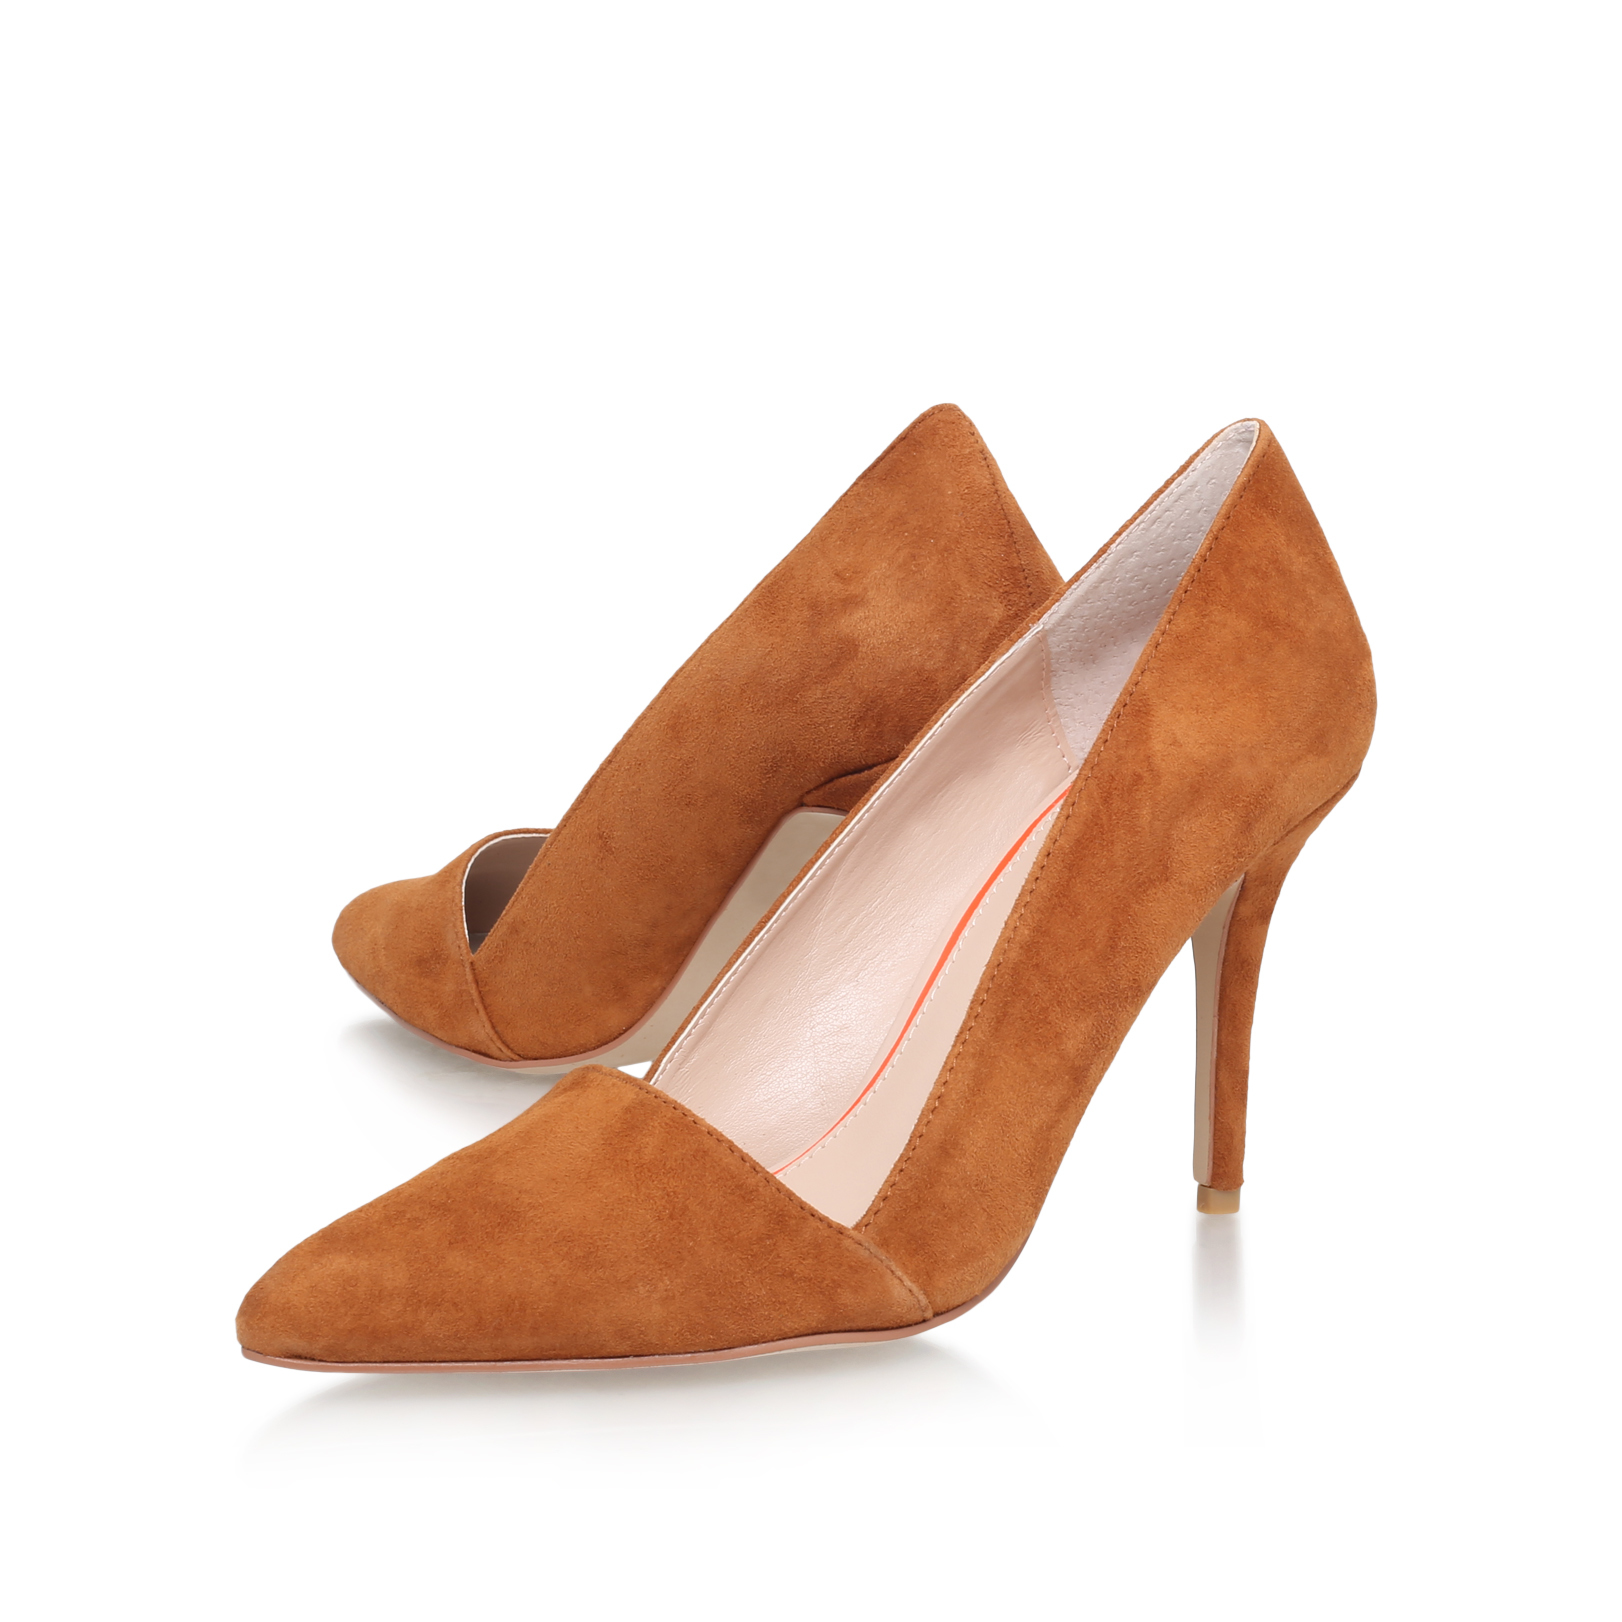 Beige Mid Heel Court Shoes Carvela delivers a tried-and-true collection essential in the shape of Aimee. Set in beige patent, this easy, elegant court is set on a just-high-enough 90mm heel and finished with a gentle rounded toe.